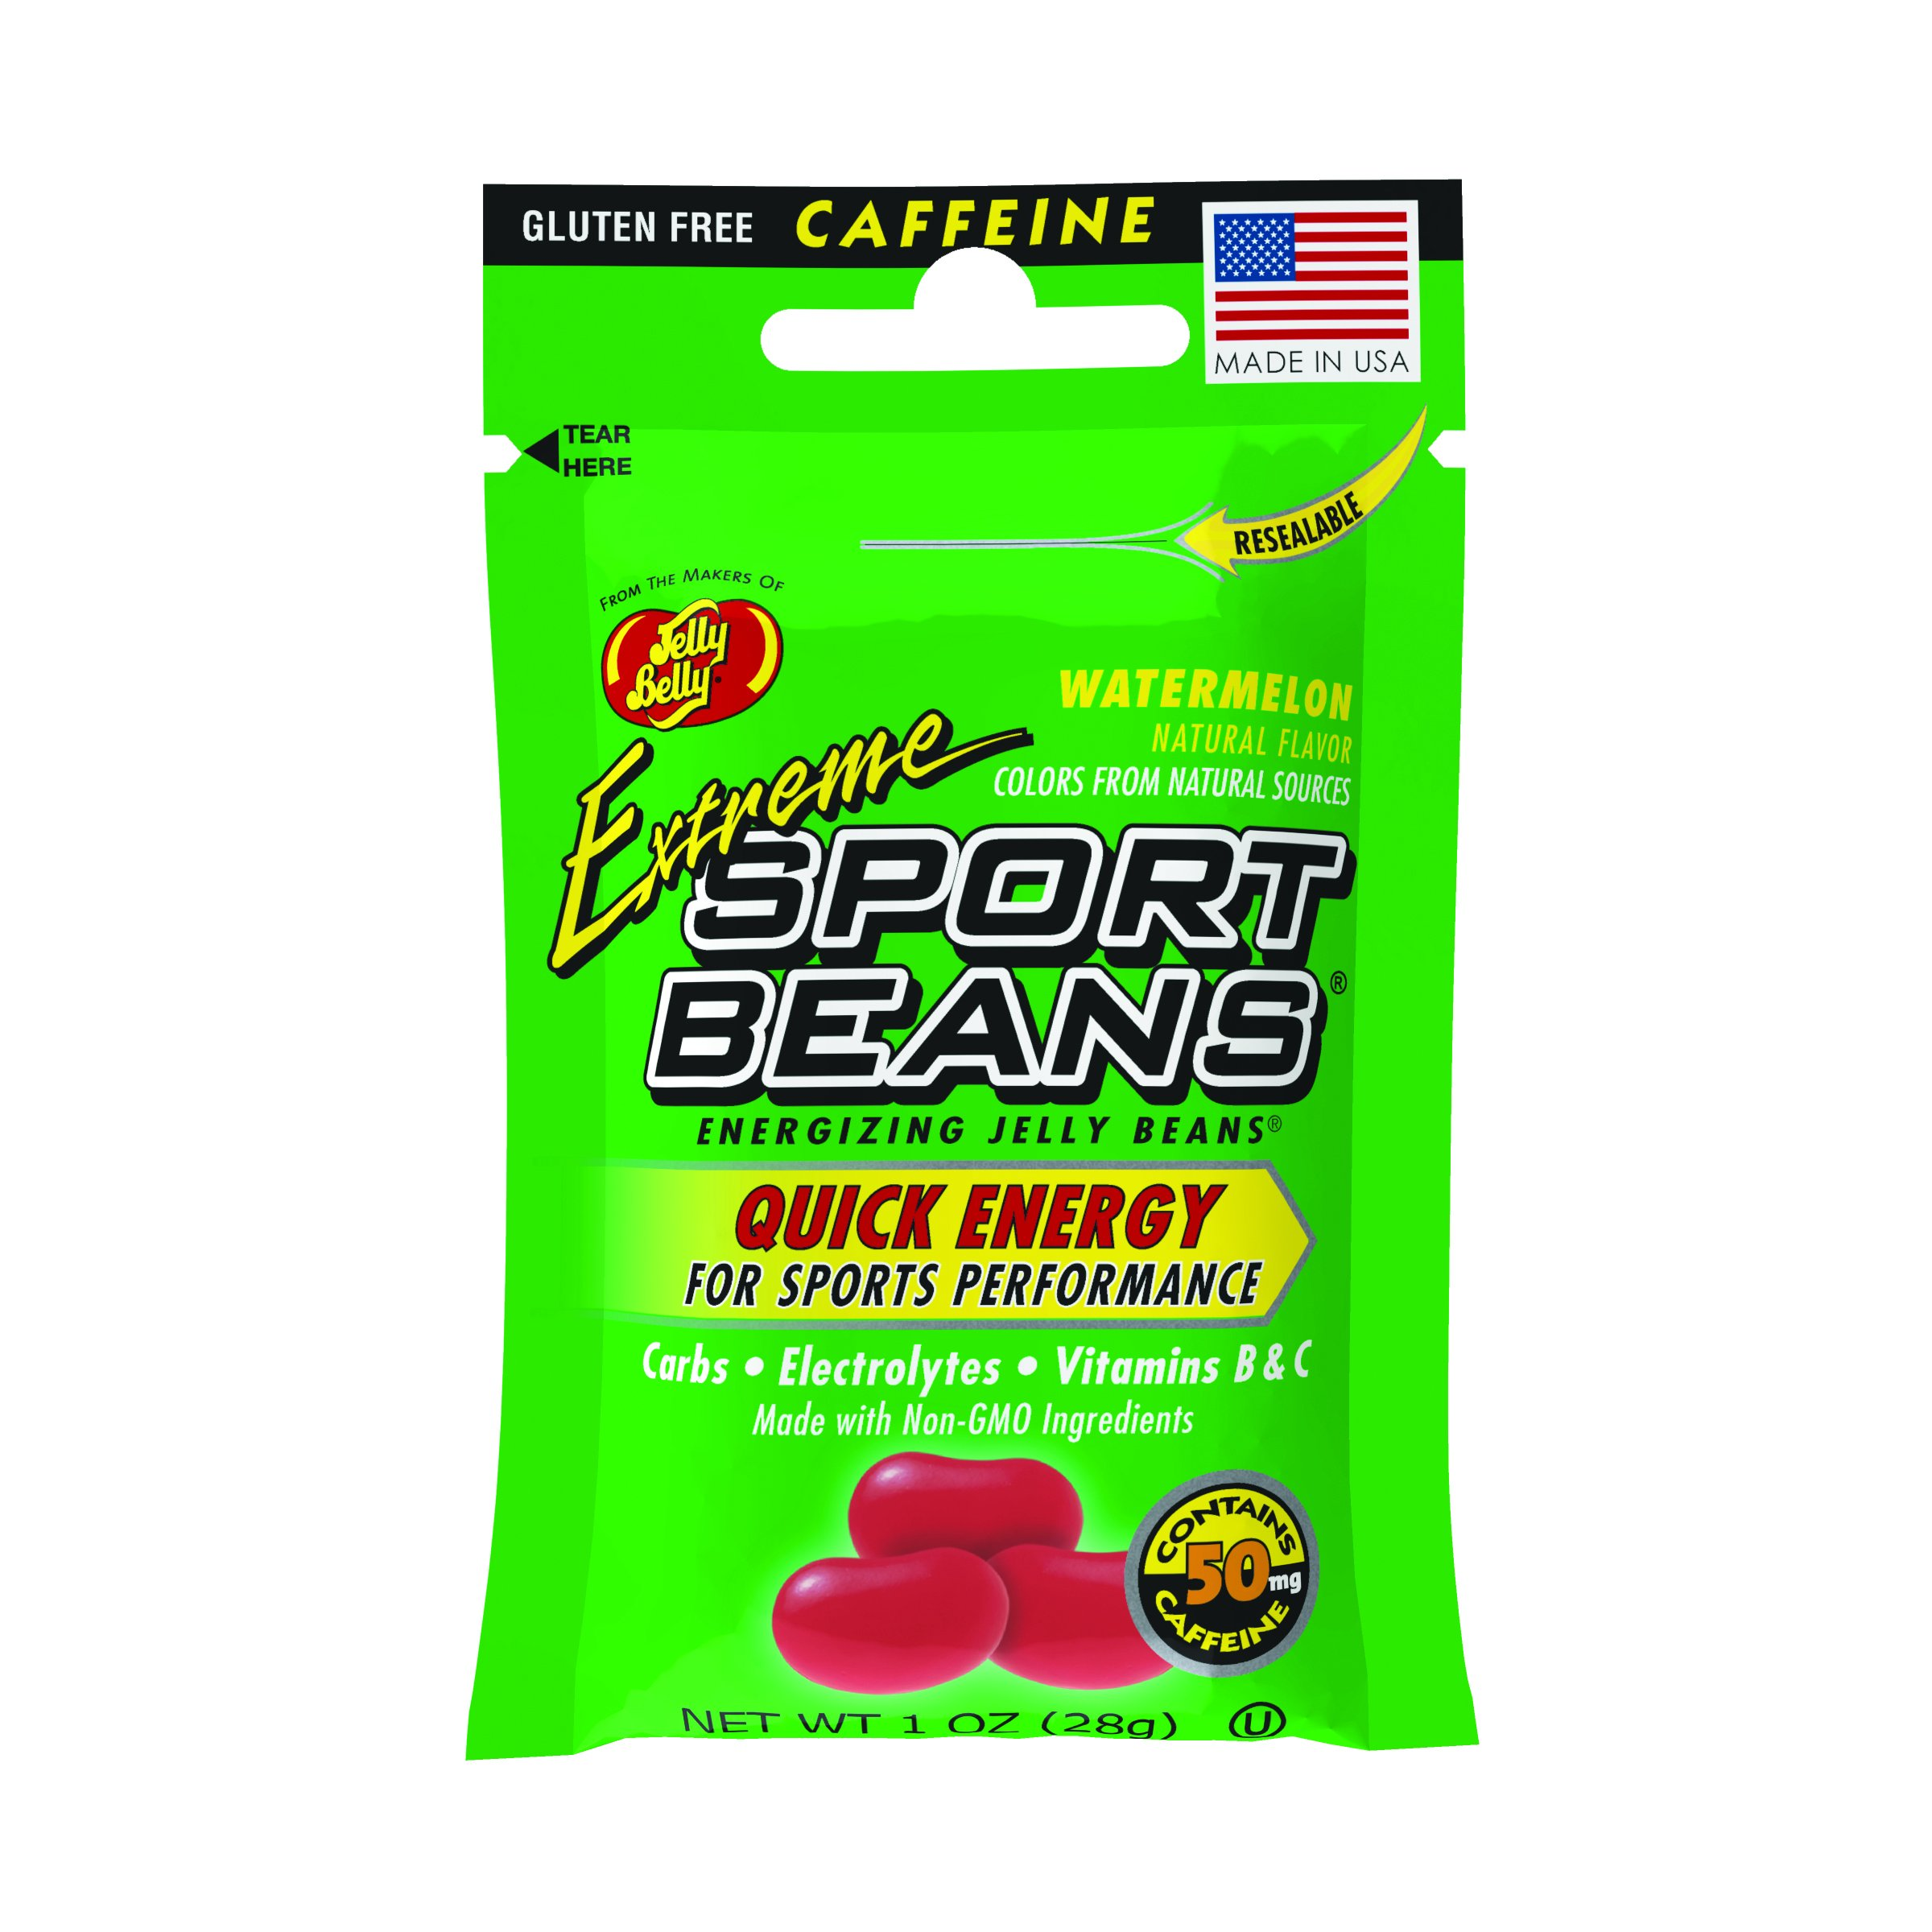 Jelly Belly Extreme Sport Beans, Caffeinated Jelly Beans, Watermelon Flavor, 24 Pack, 1-oz Each by Jelly Belly